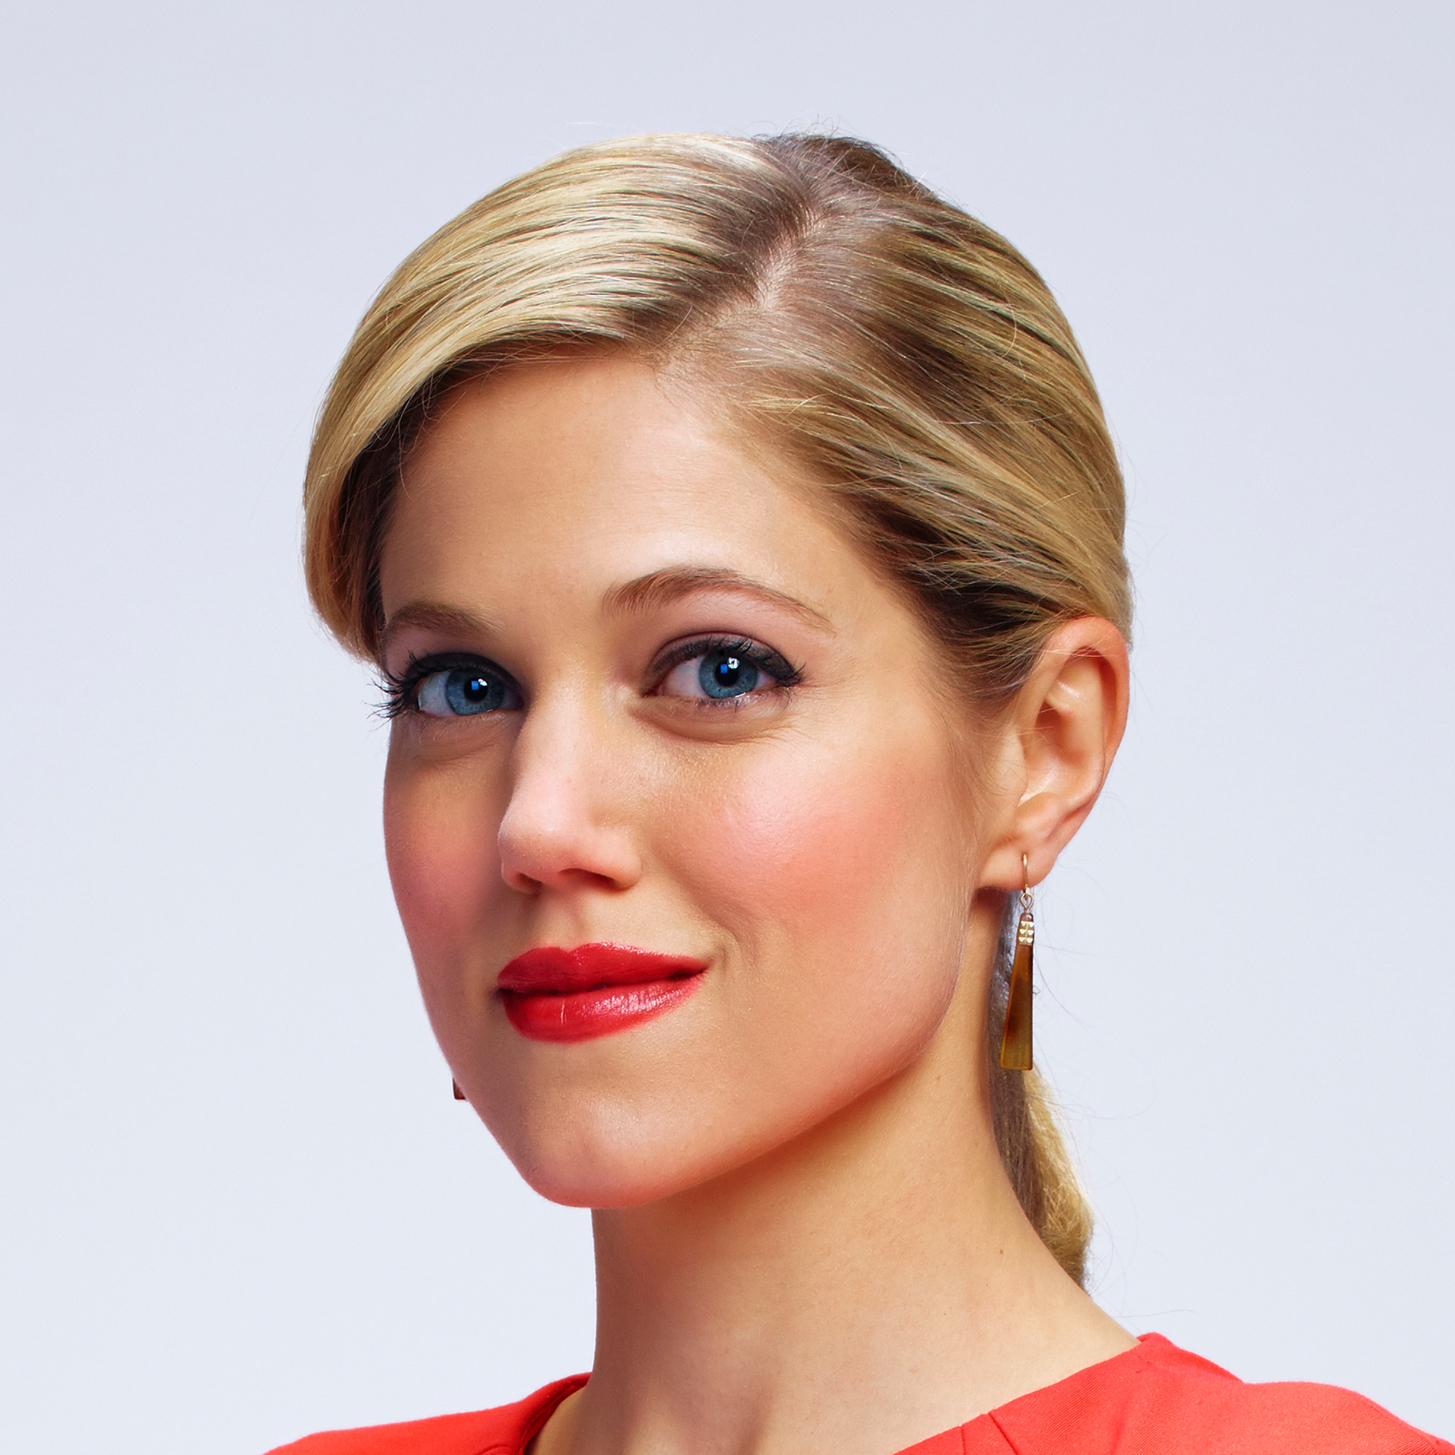 charity wakefield images